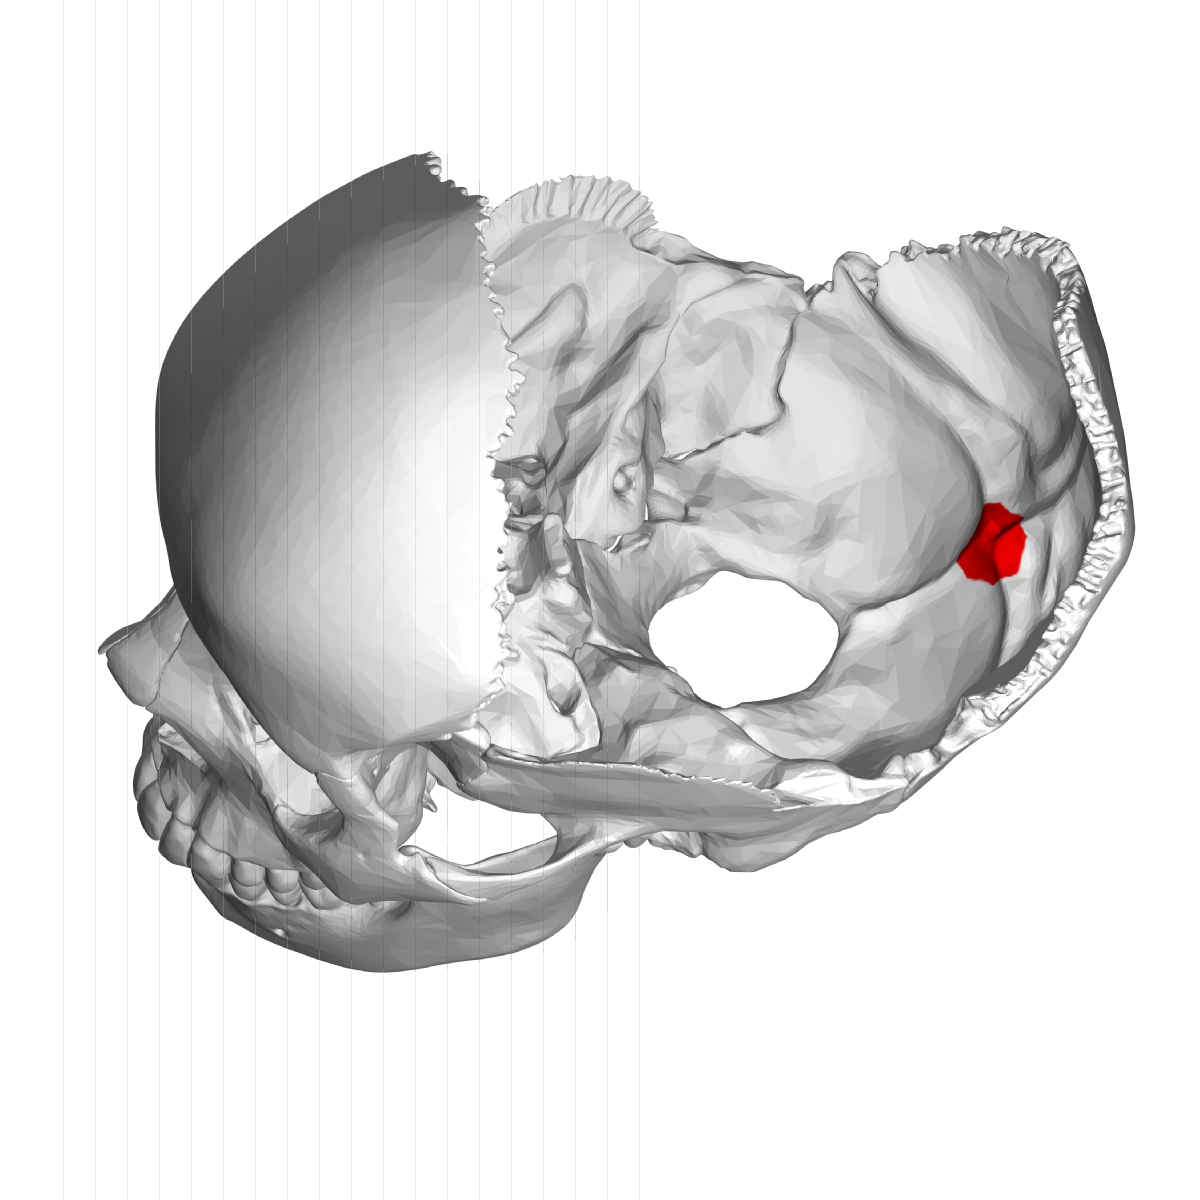 internal occipital protuberance wikipedia